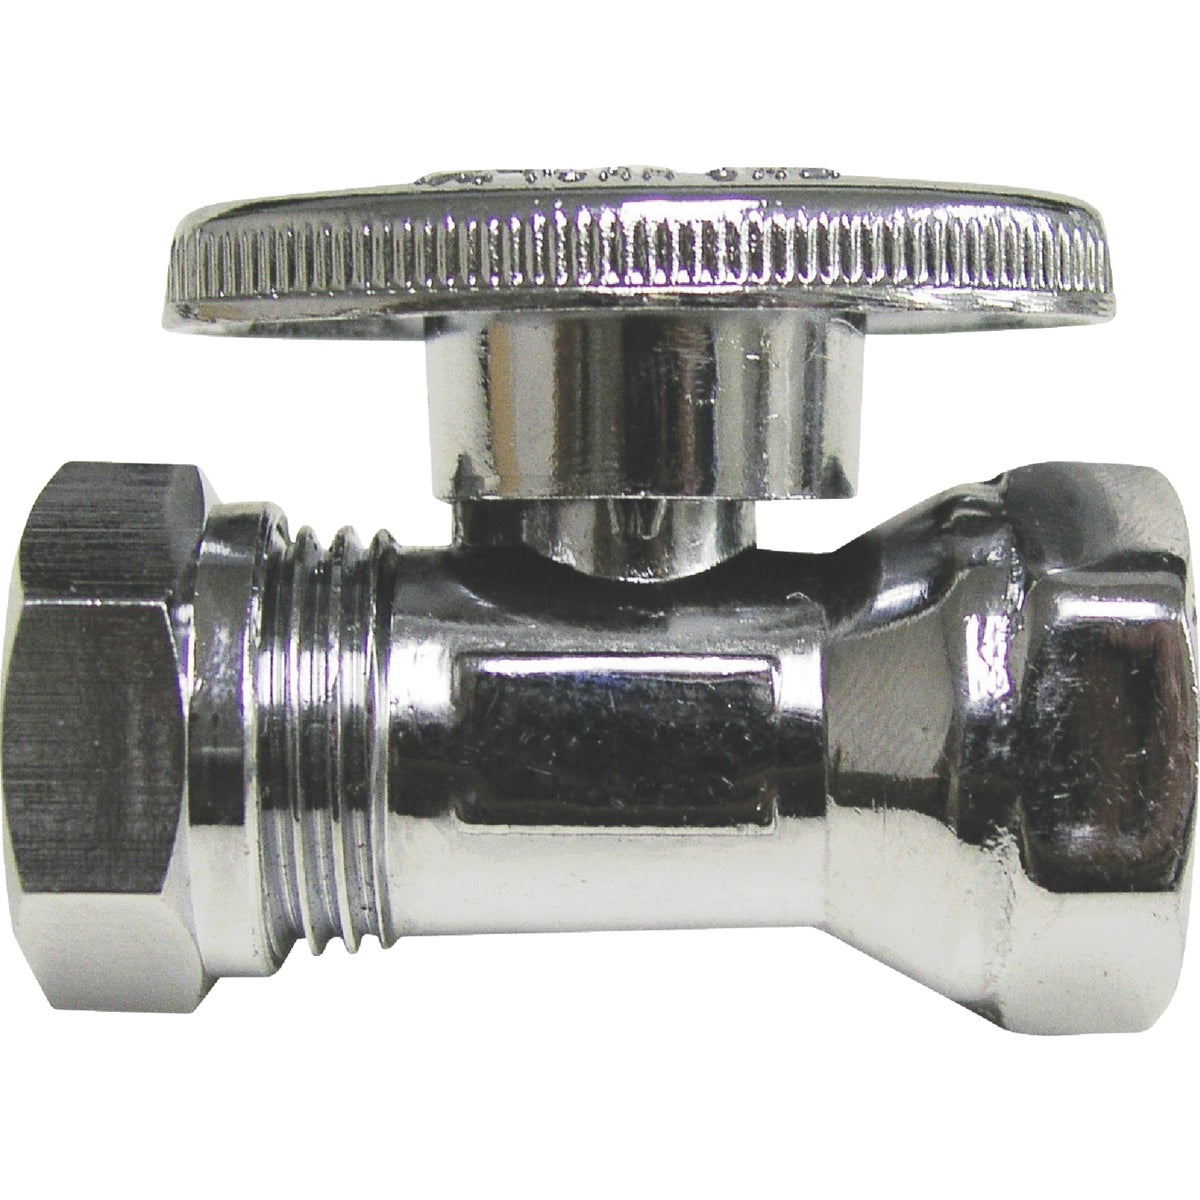 1/2FIPX7/16SJ STRT VALVE - LFPBQT-622 by Watts Regulator Co